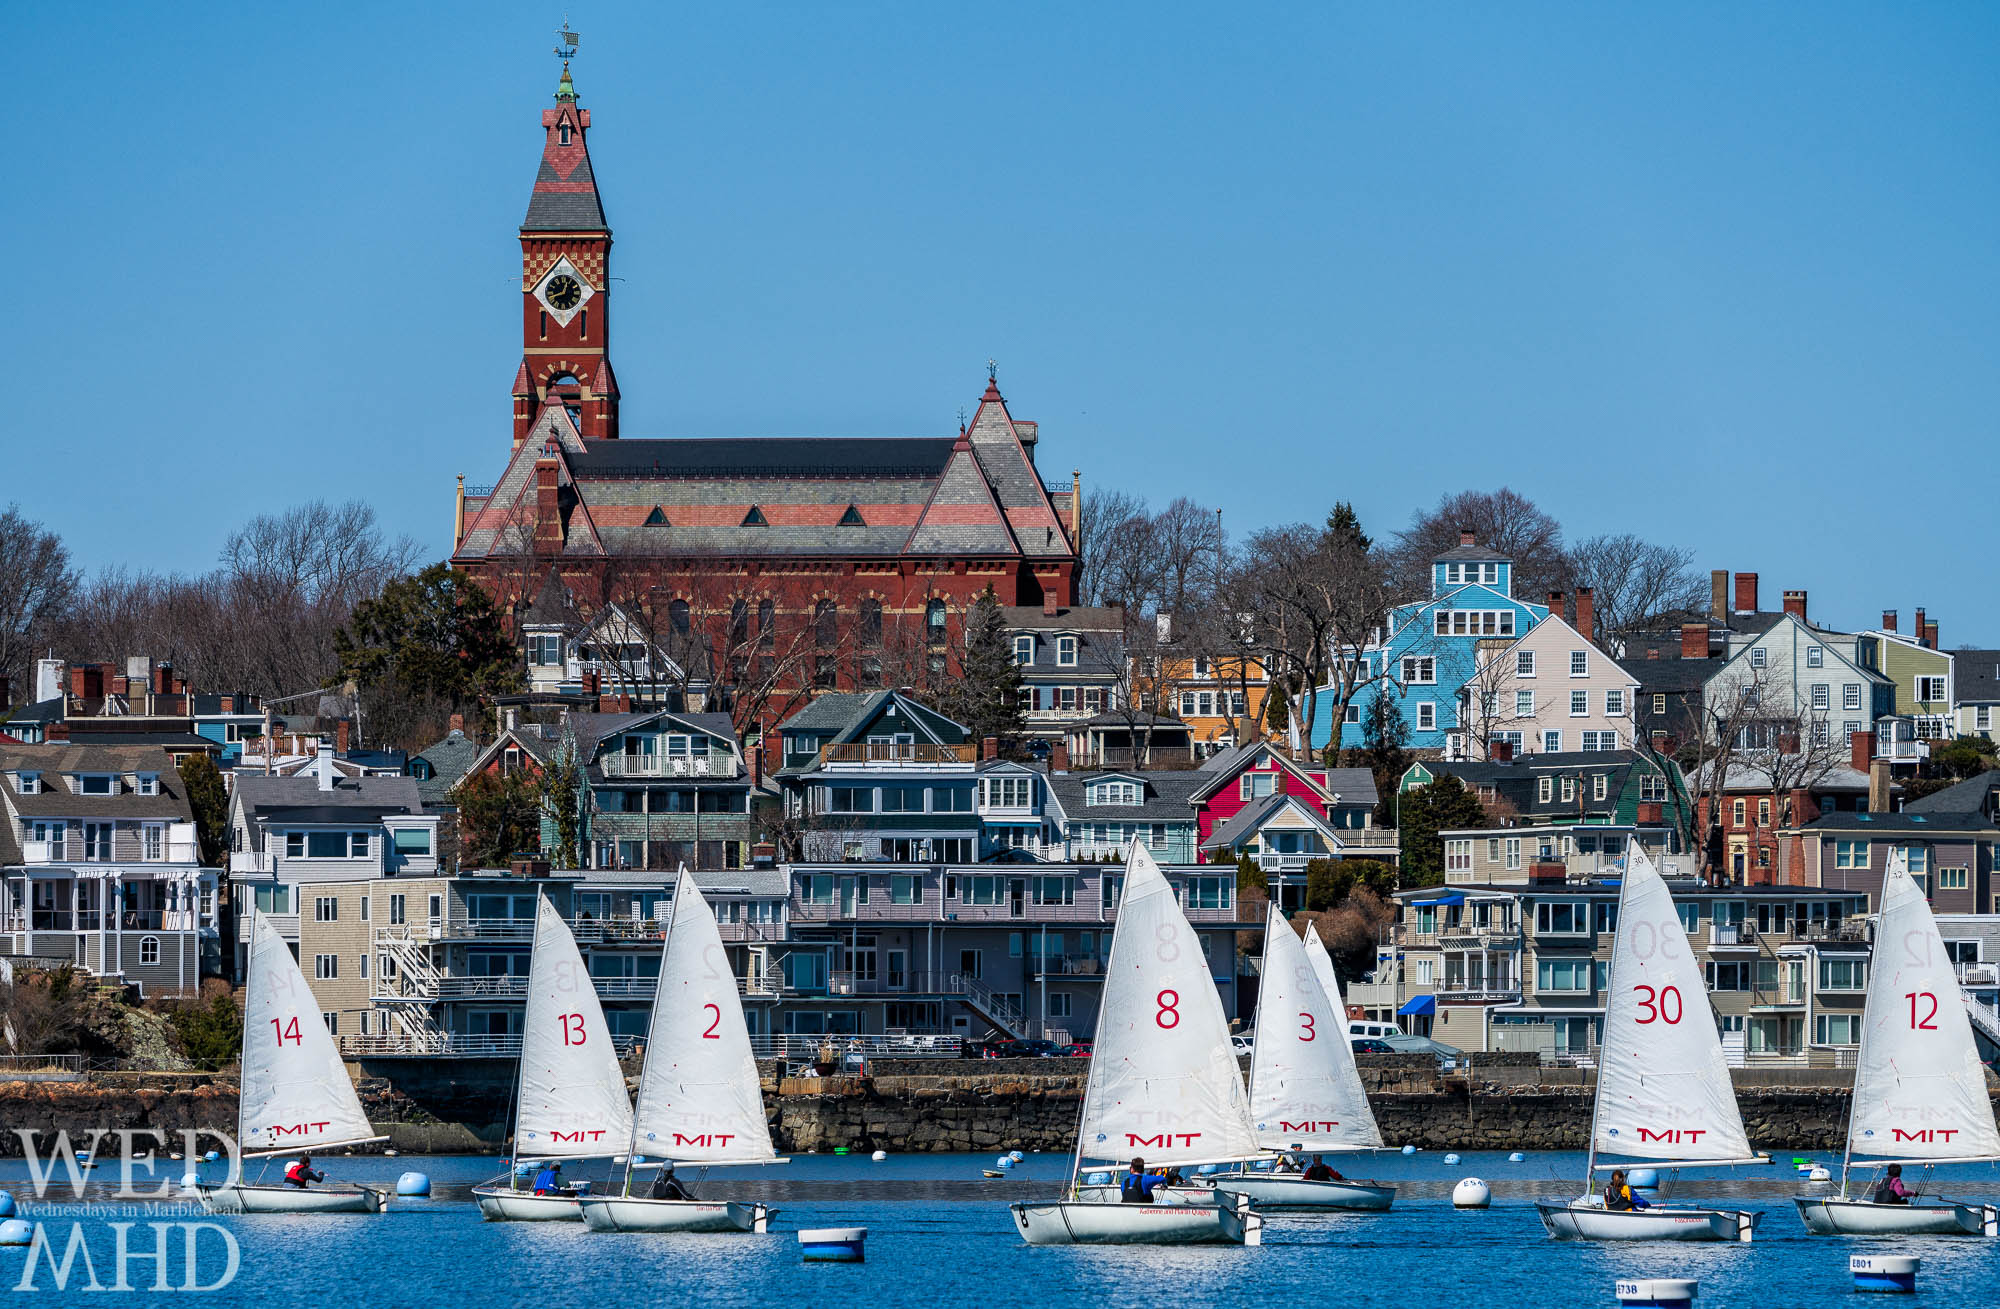 The Marblehead Tech Dinghy Association races in front of Abbot Hall. Spring was in the air and, with the MIT on the sails, it seems class is in session in Marblehead.